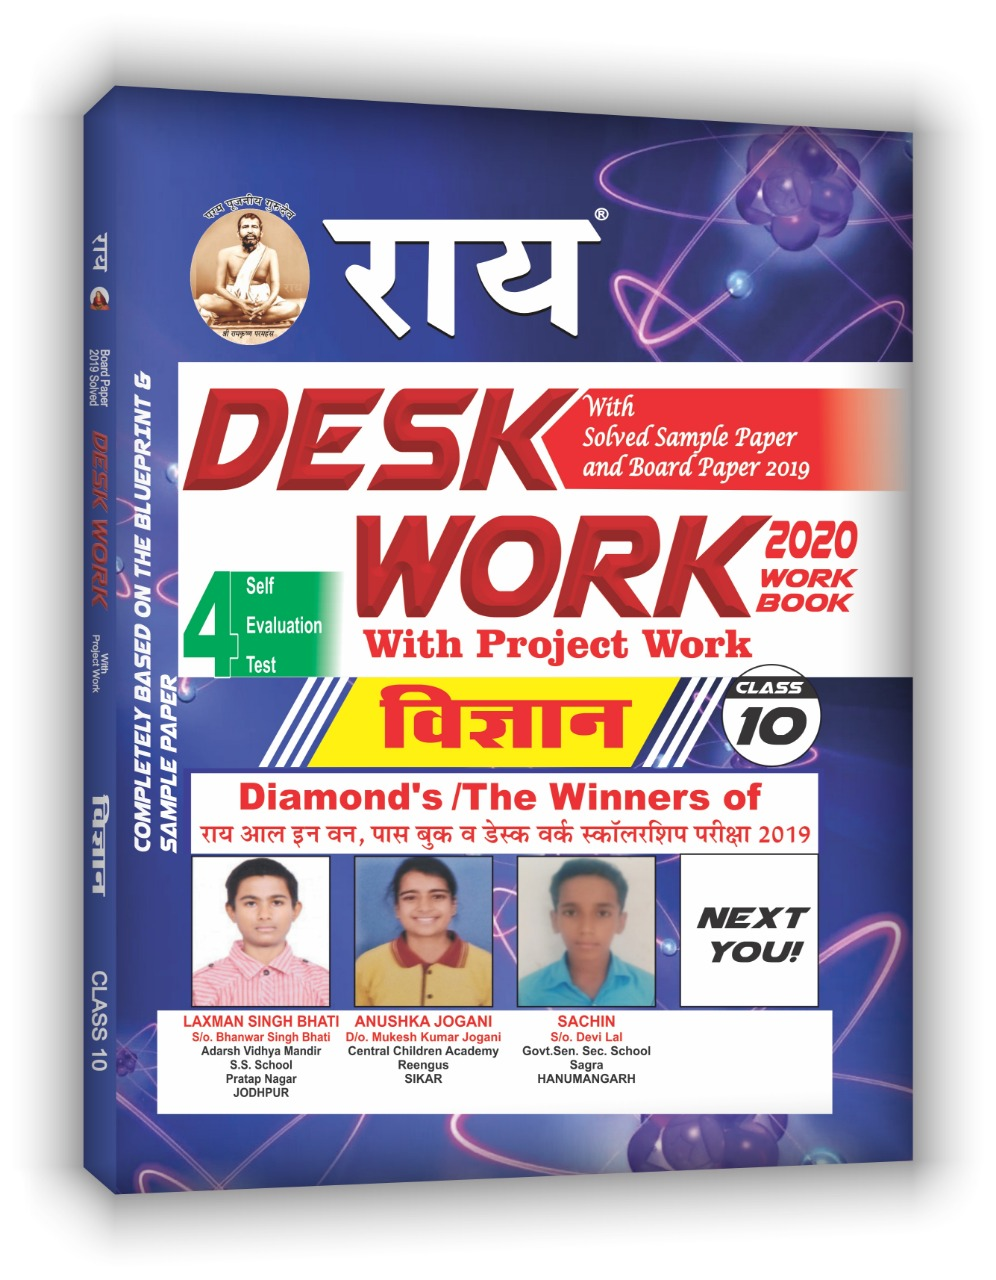 Rai Desk Work 2020 Vigyan Class 10th Hindi Medium with free Scholarship Exam Form( Blue Print , Board Paper 2019 Solved ,1 Board Sample Paper+ 9 Model Papers +4 Self Evaluation Papers )